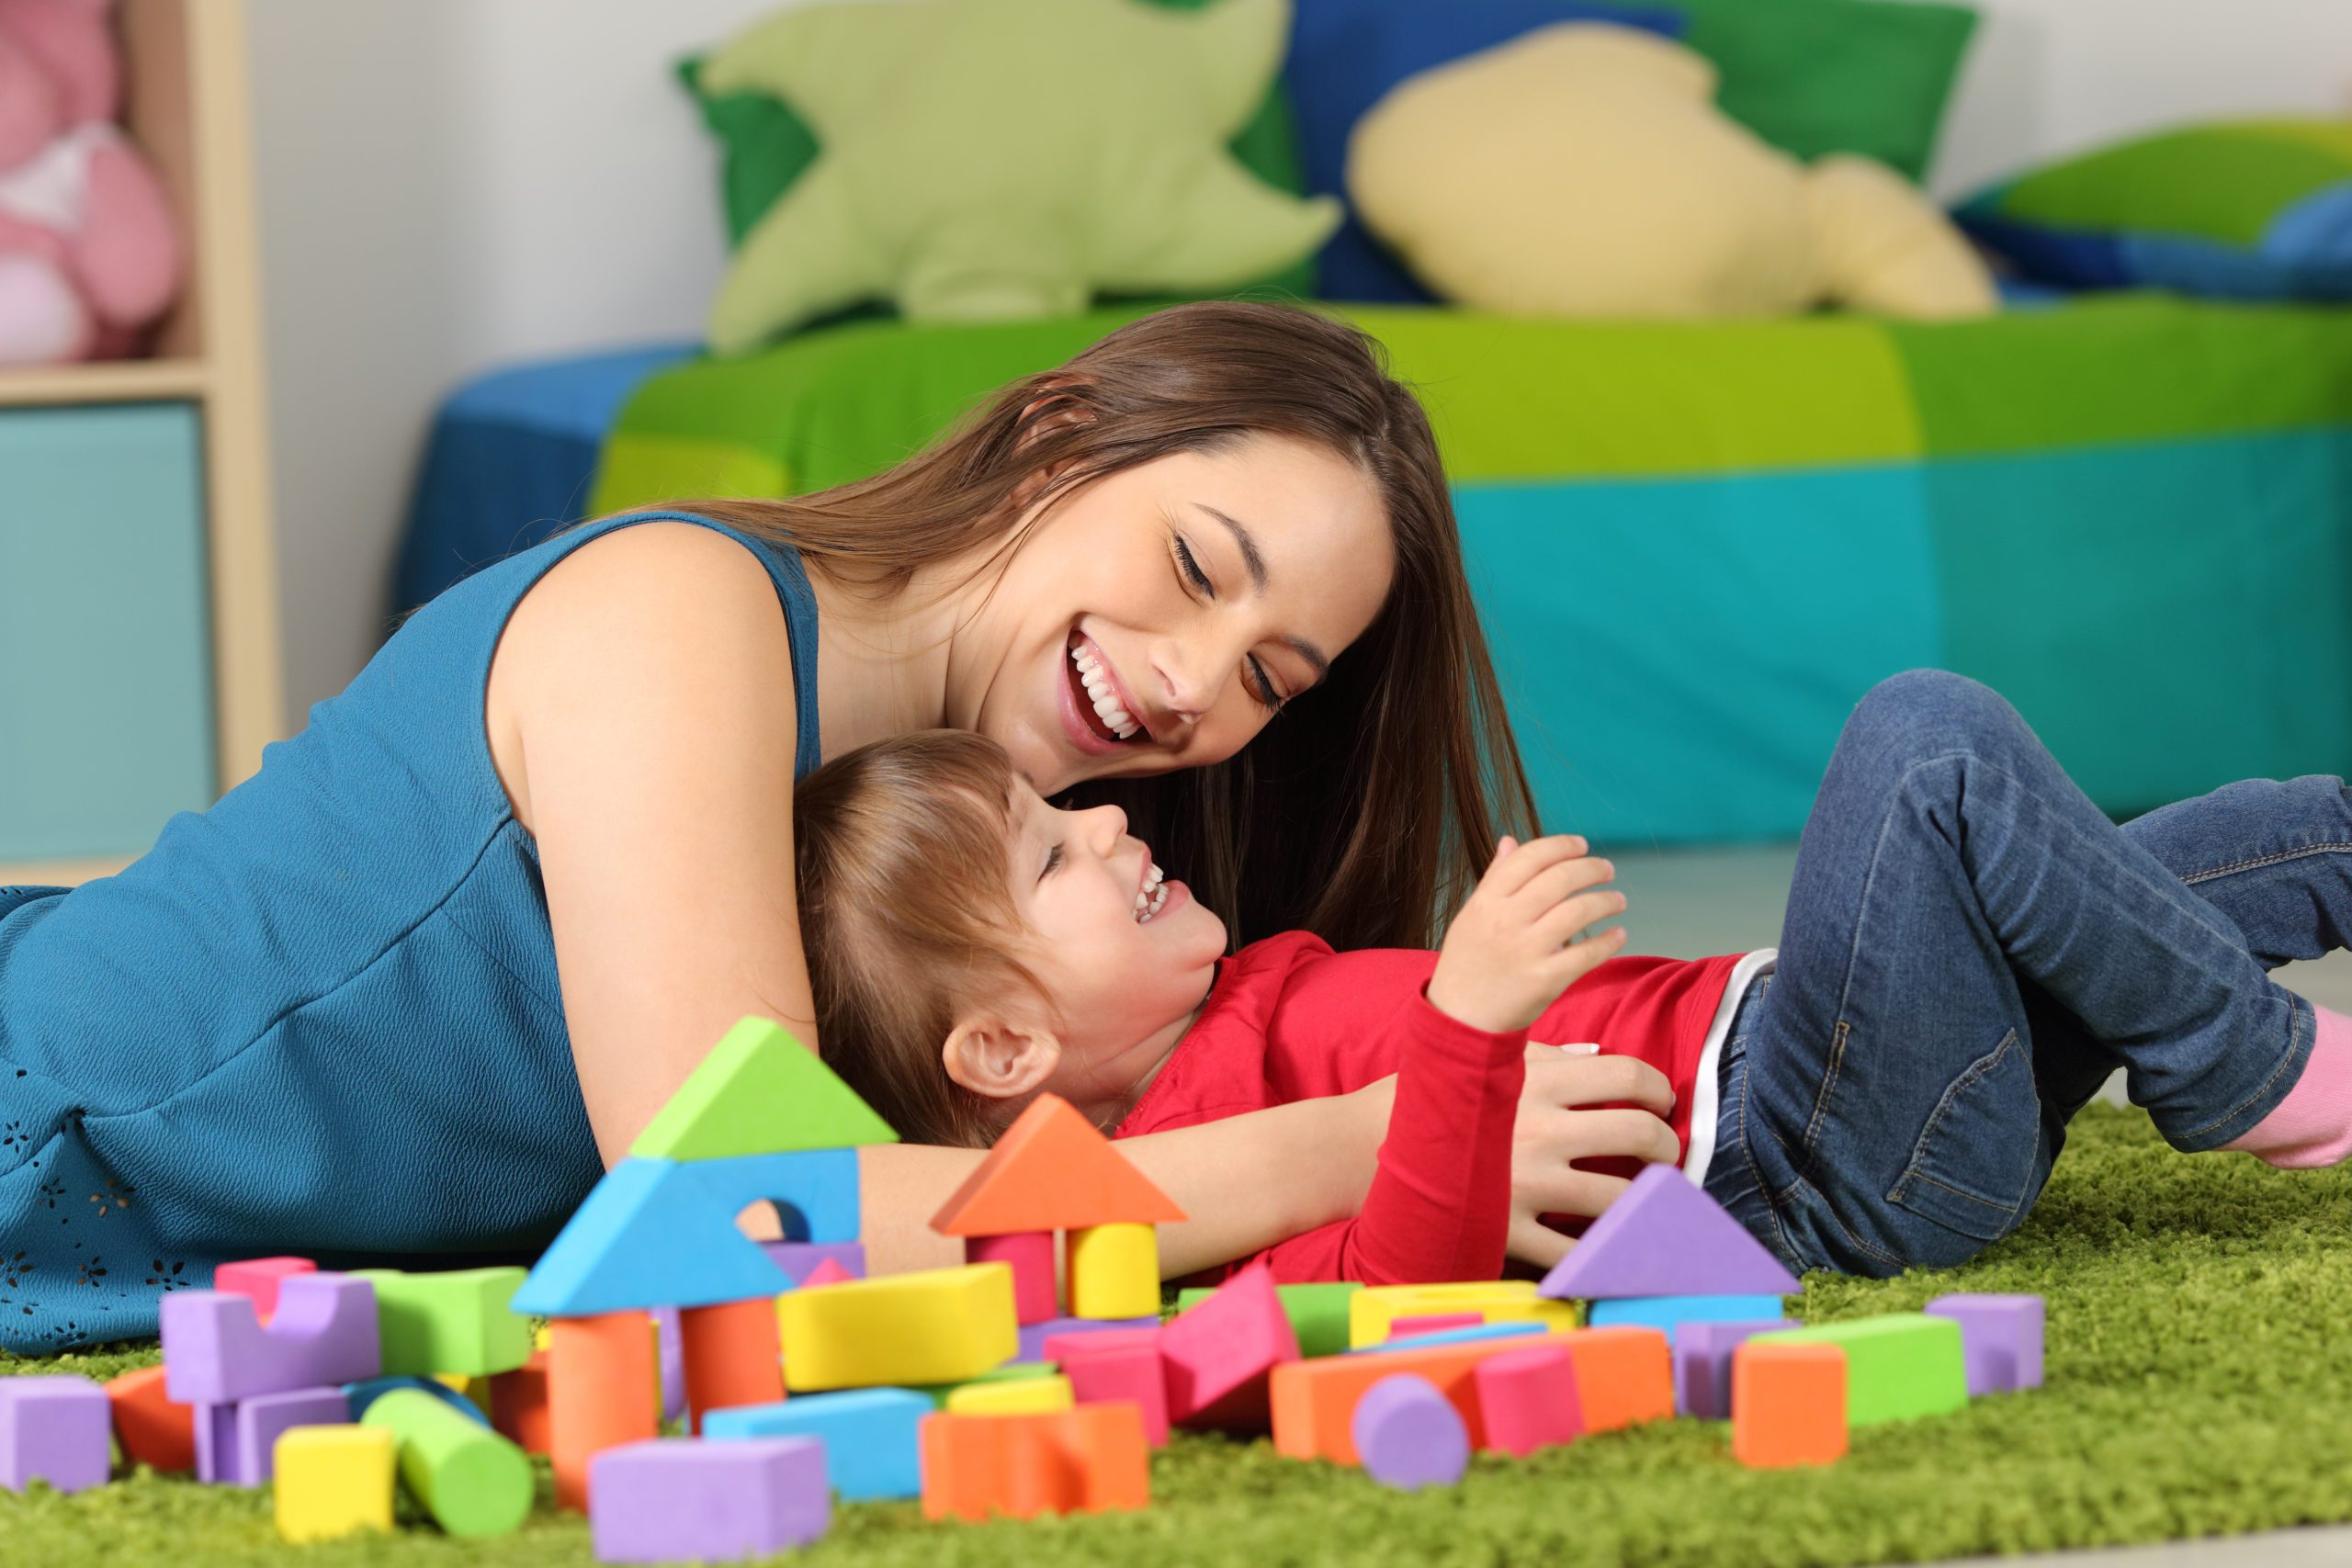 Which is better, daycare or nanny? When searching for someone you trust to watch your child, it's essential to consider all your options! #parenting #childcare #baby #nanny #daycare